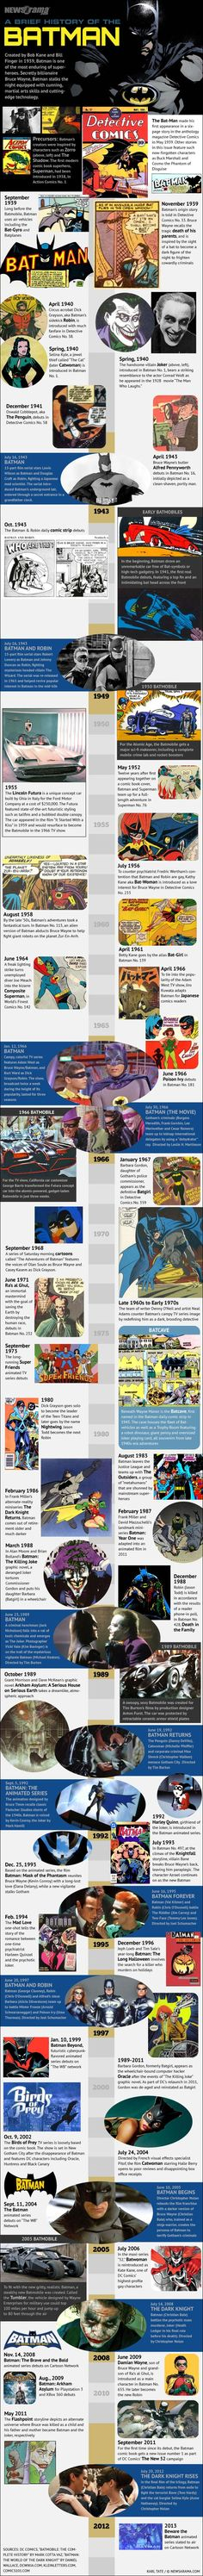 A Brief History of the Batman Infographic